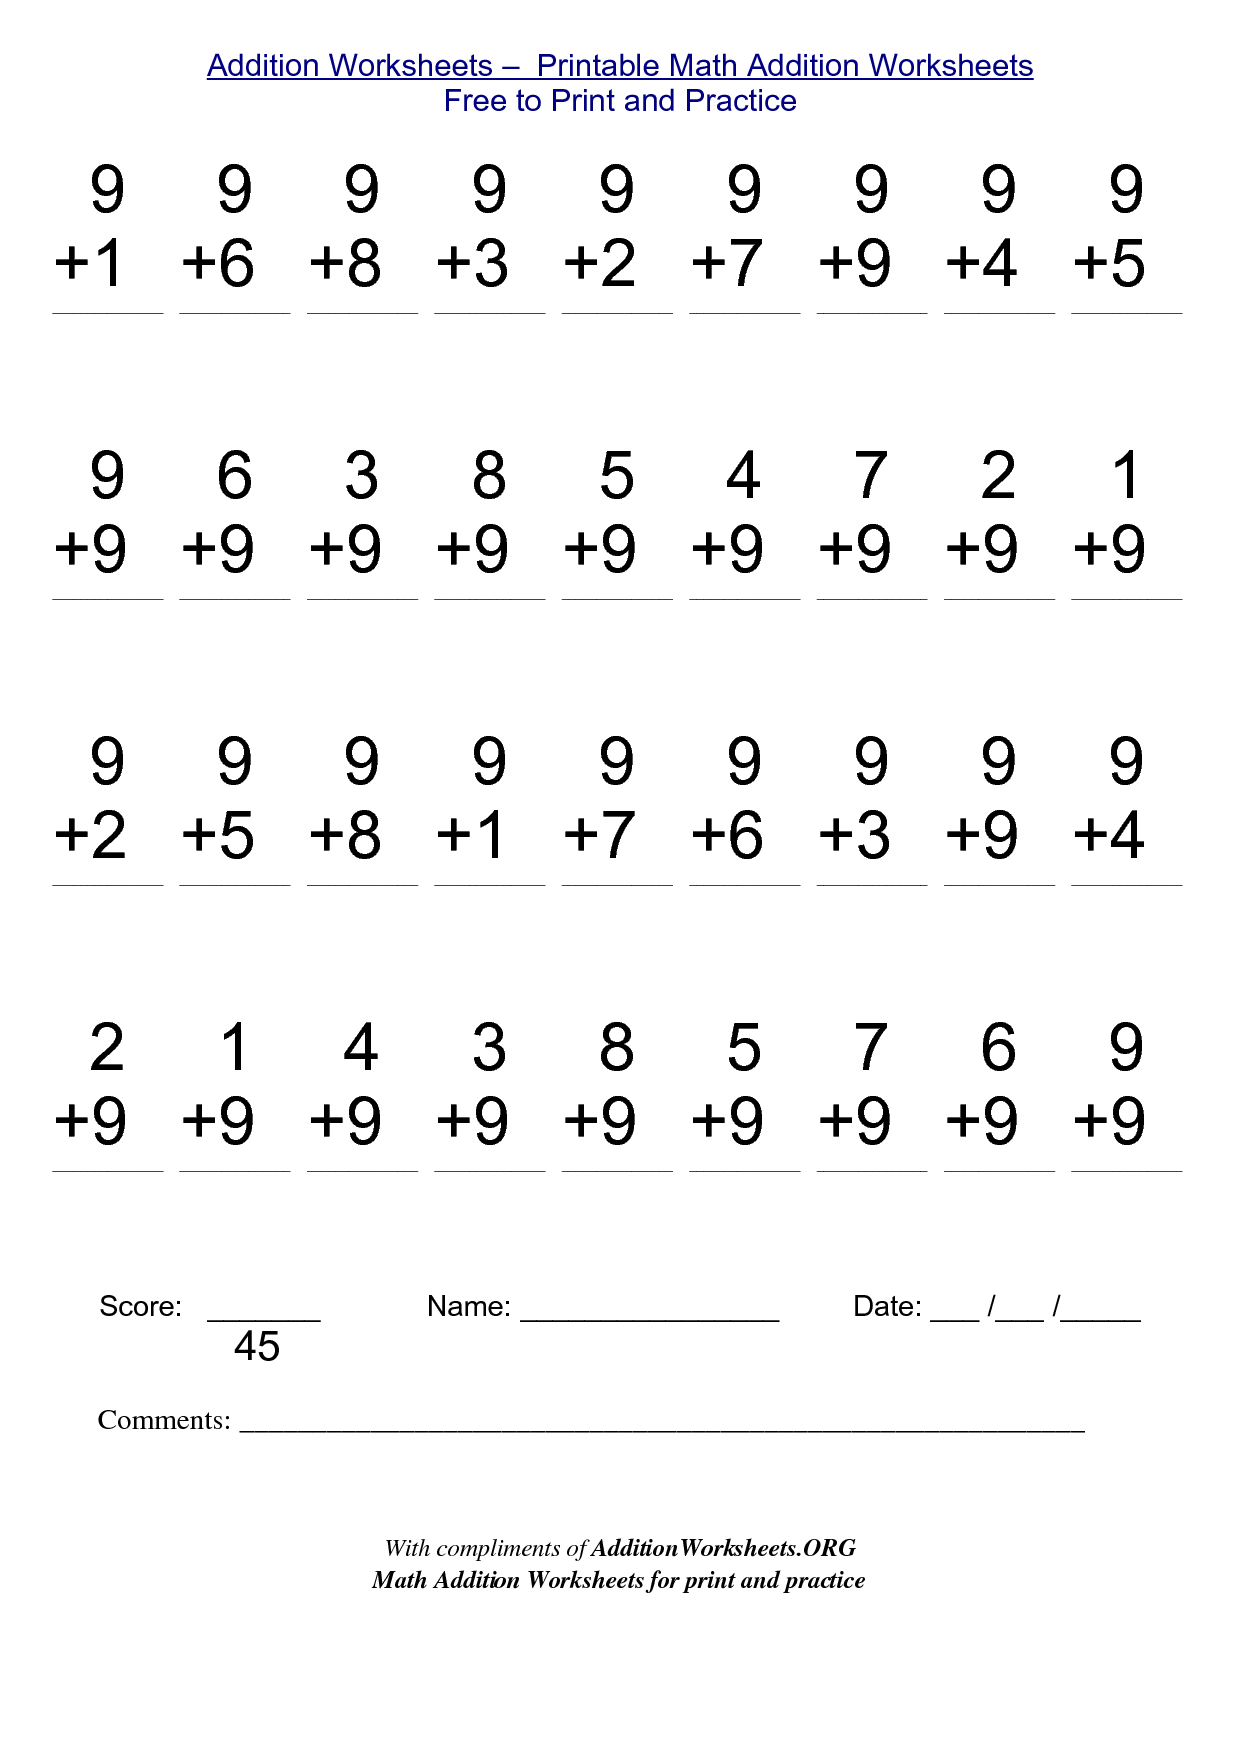 Free Worksheet 100 Addition Facts 120 For Educators – Free Addition Worksheets with Pictures